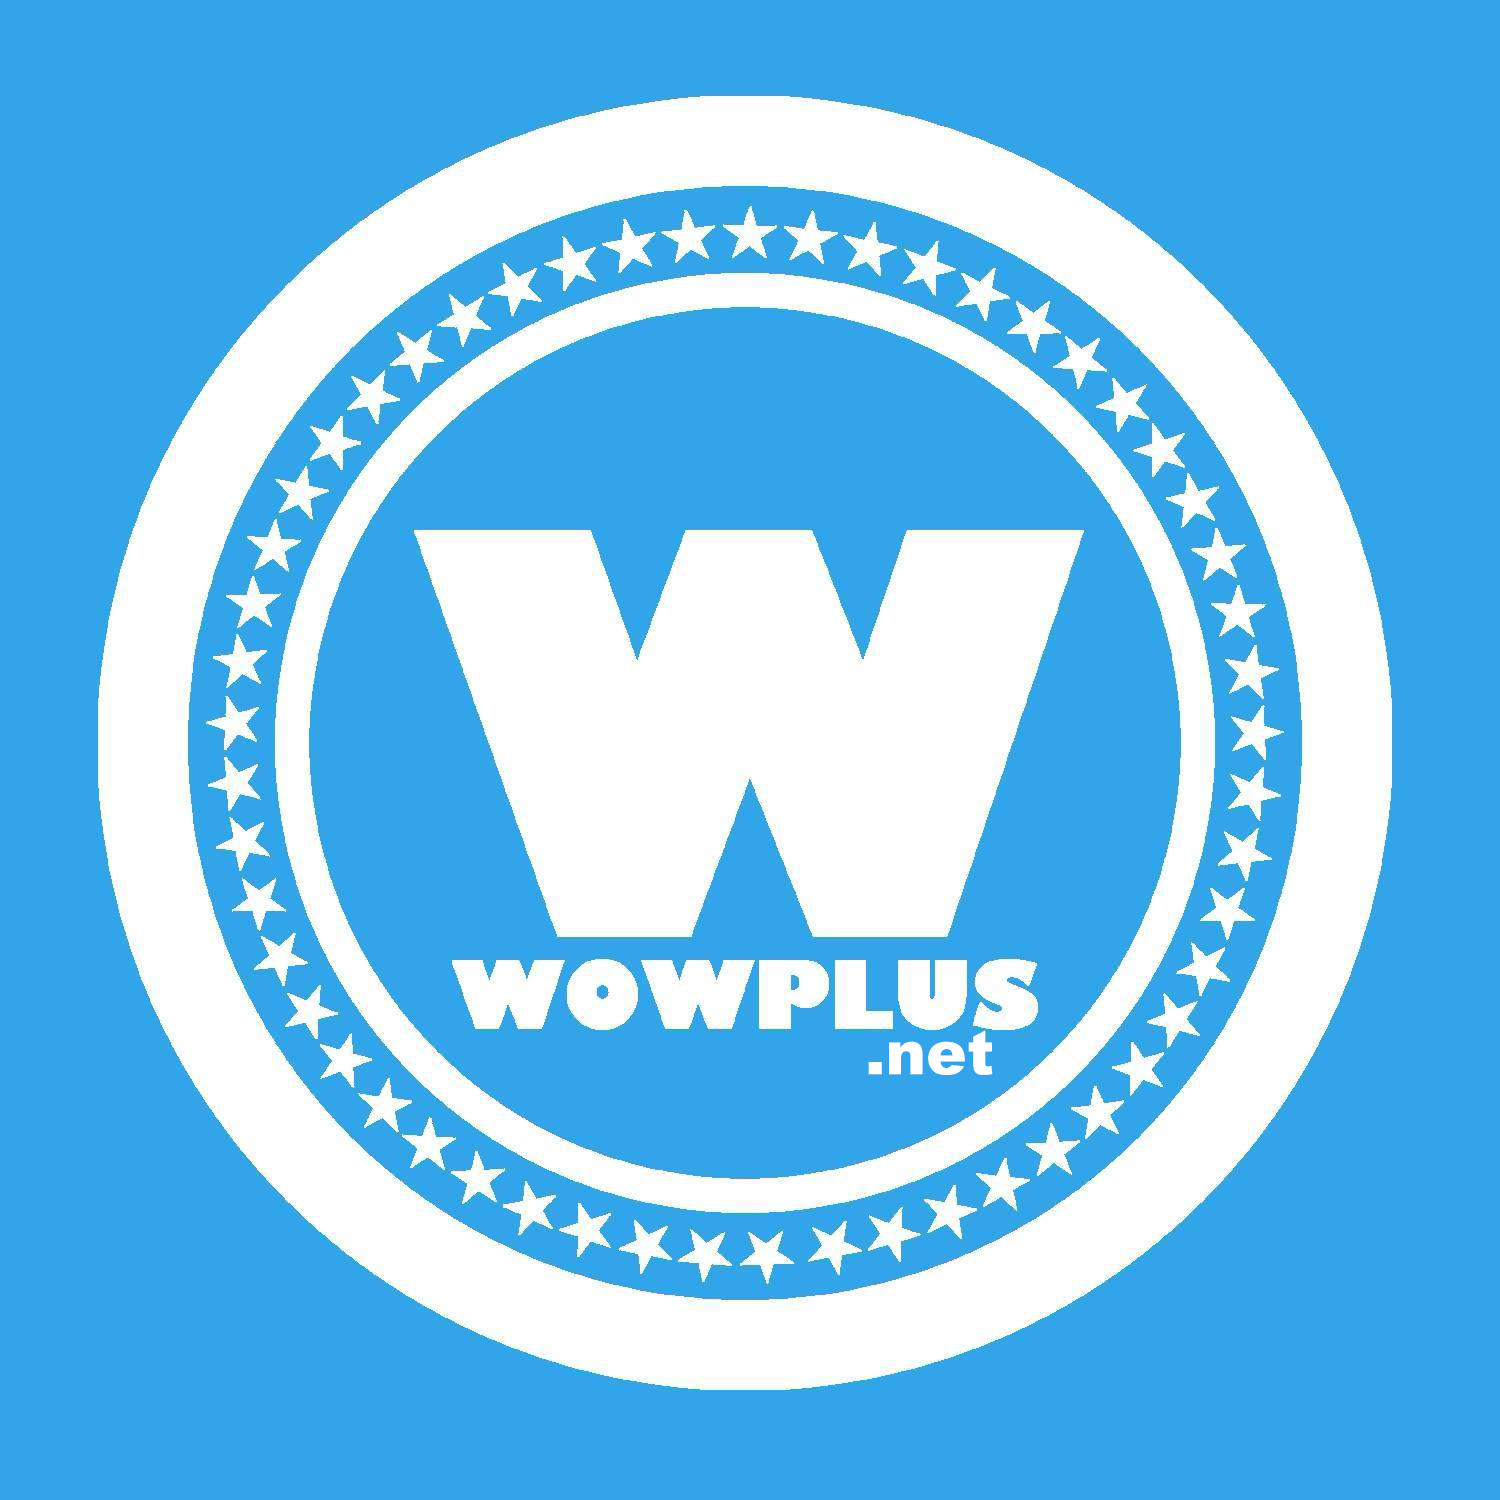 Breaking news, Videos, Top stories, Business, Health, Sports and more by Wowplus